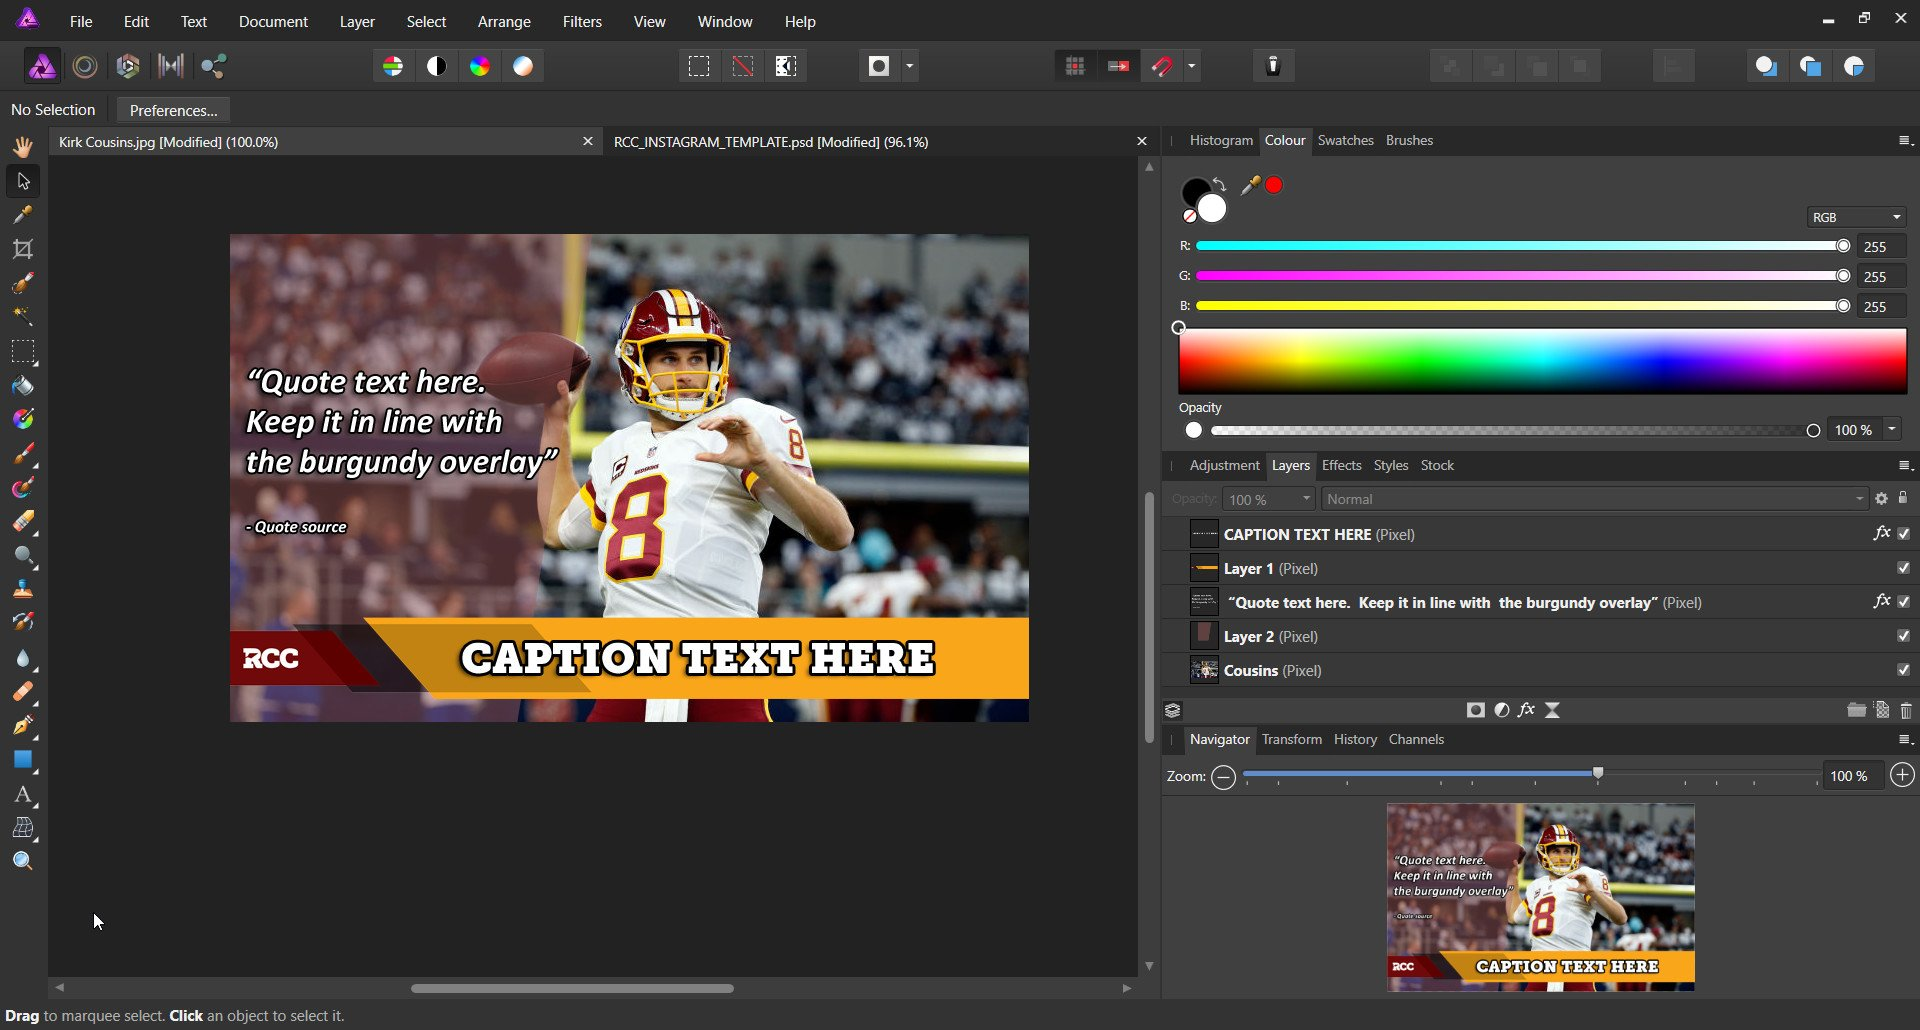 Terrific A Full Setof Affinity Photo Can Replace Photoshop Affinity Photo Has A Wide Set Photo Editing Features Including Color Hdr Panoramic For A Lot Windows dpreview Affinity Photo Photoshop